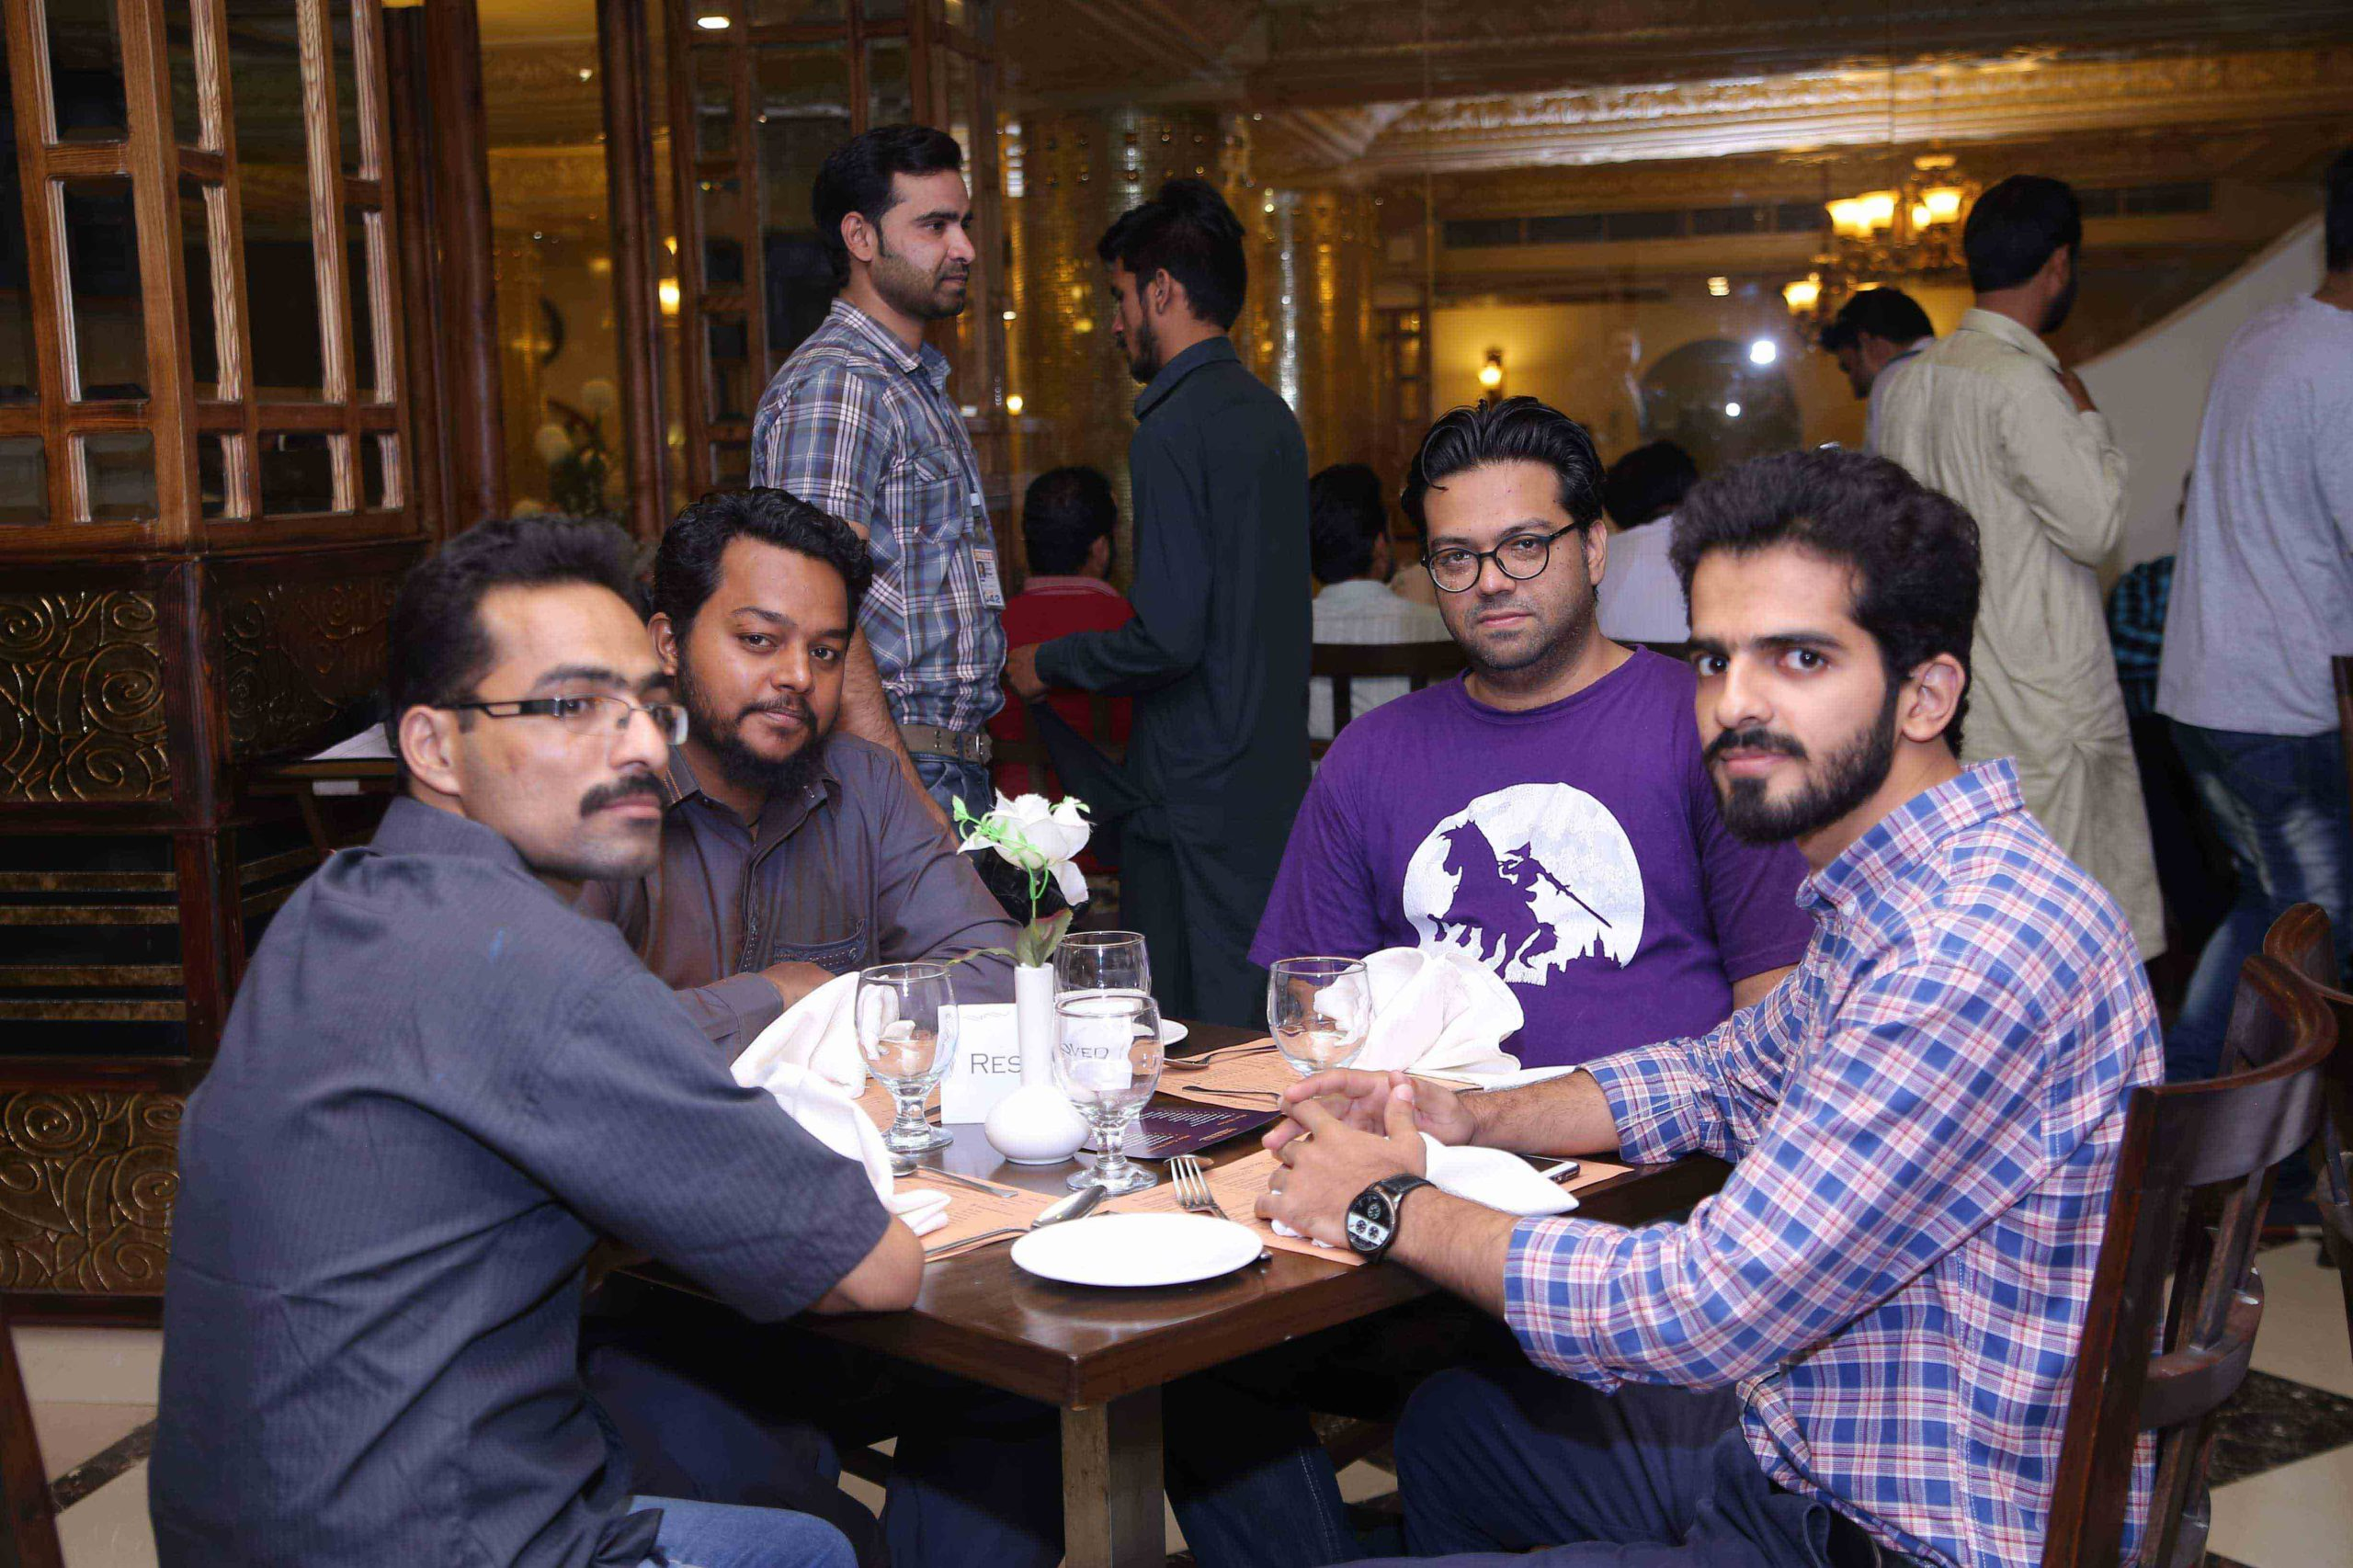 STAFF_ANNUAL_DINNER_&_IFTAR_PARTTY_35